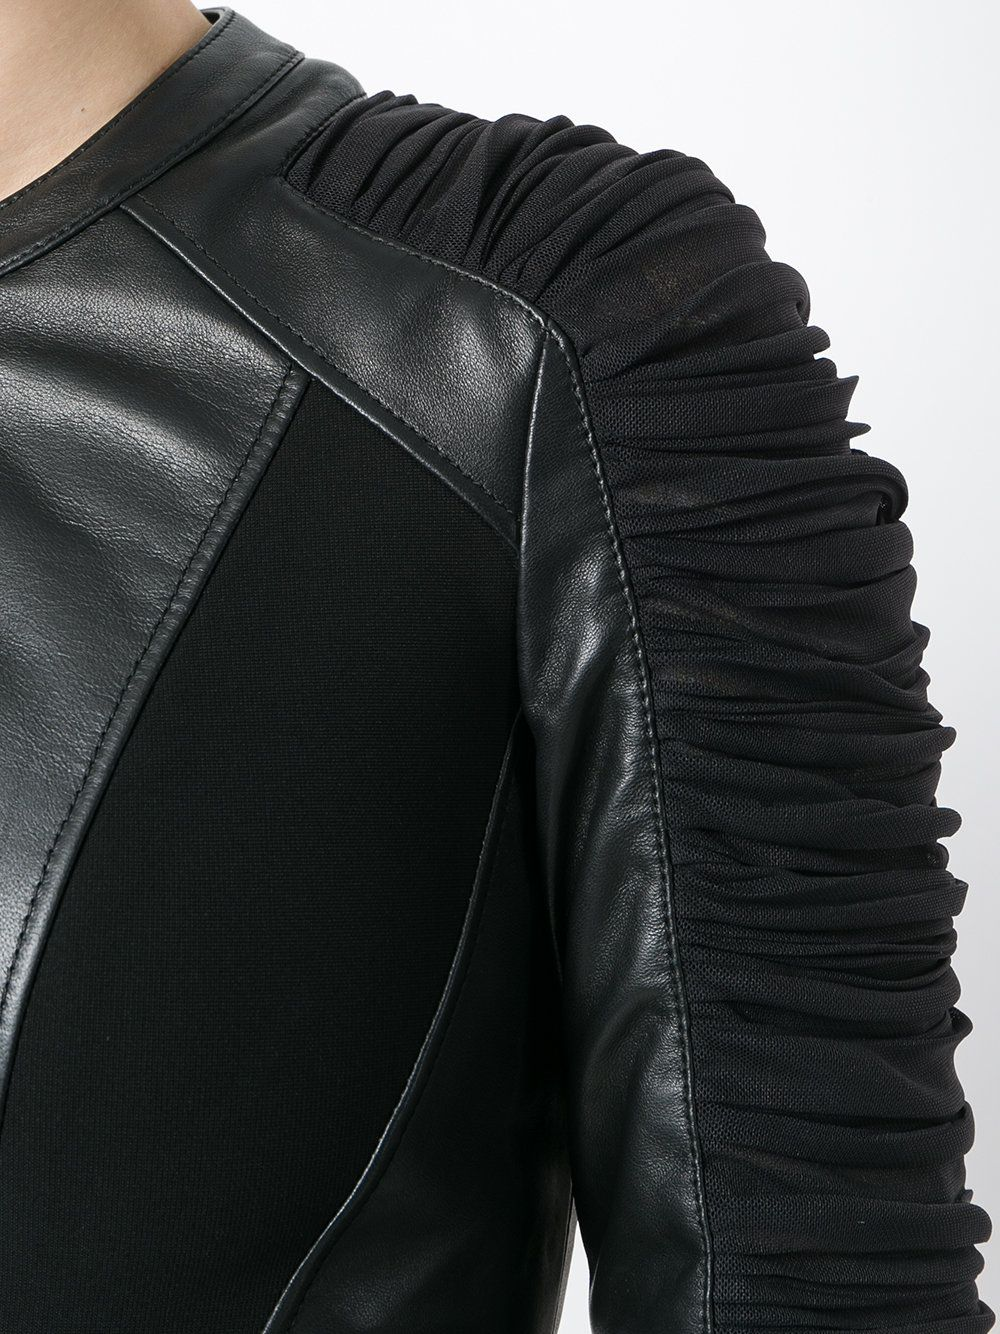 a45b4989fe Versace ruched leather jacket | VERSACE in 2019 | Leather jacket ...